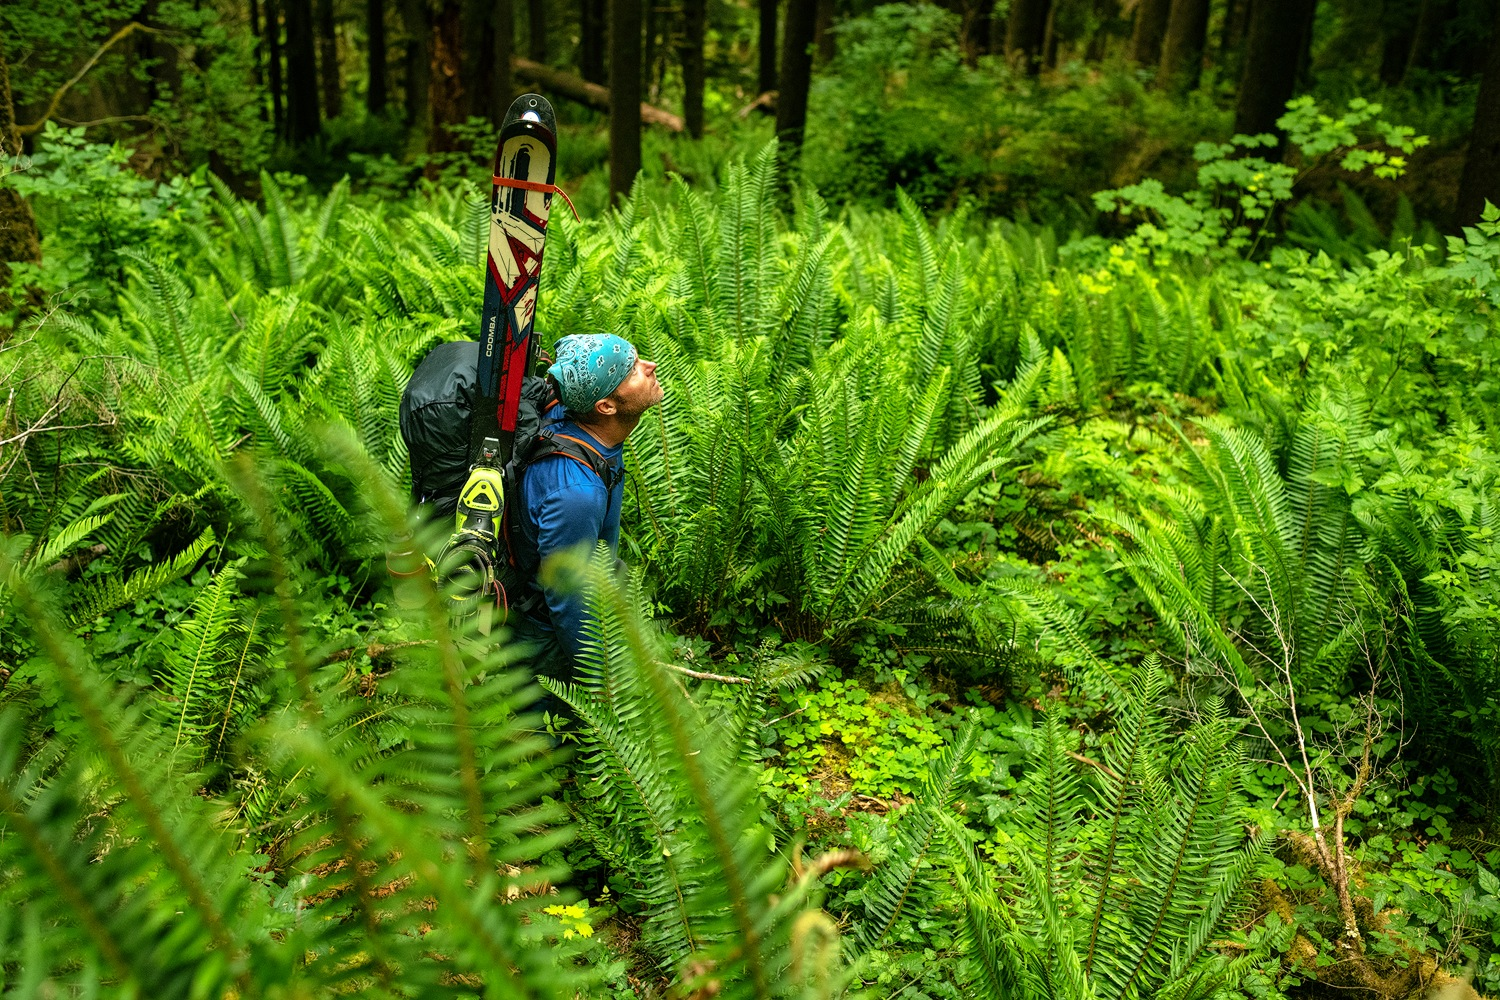 A backcountry skier with his skis on his backpack hikes through lush ferns in the rainforest in the Olympic Peninsula